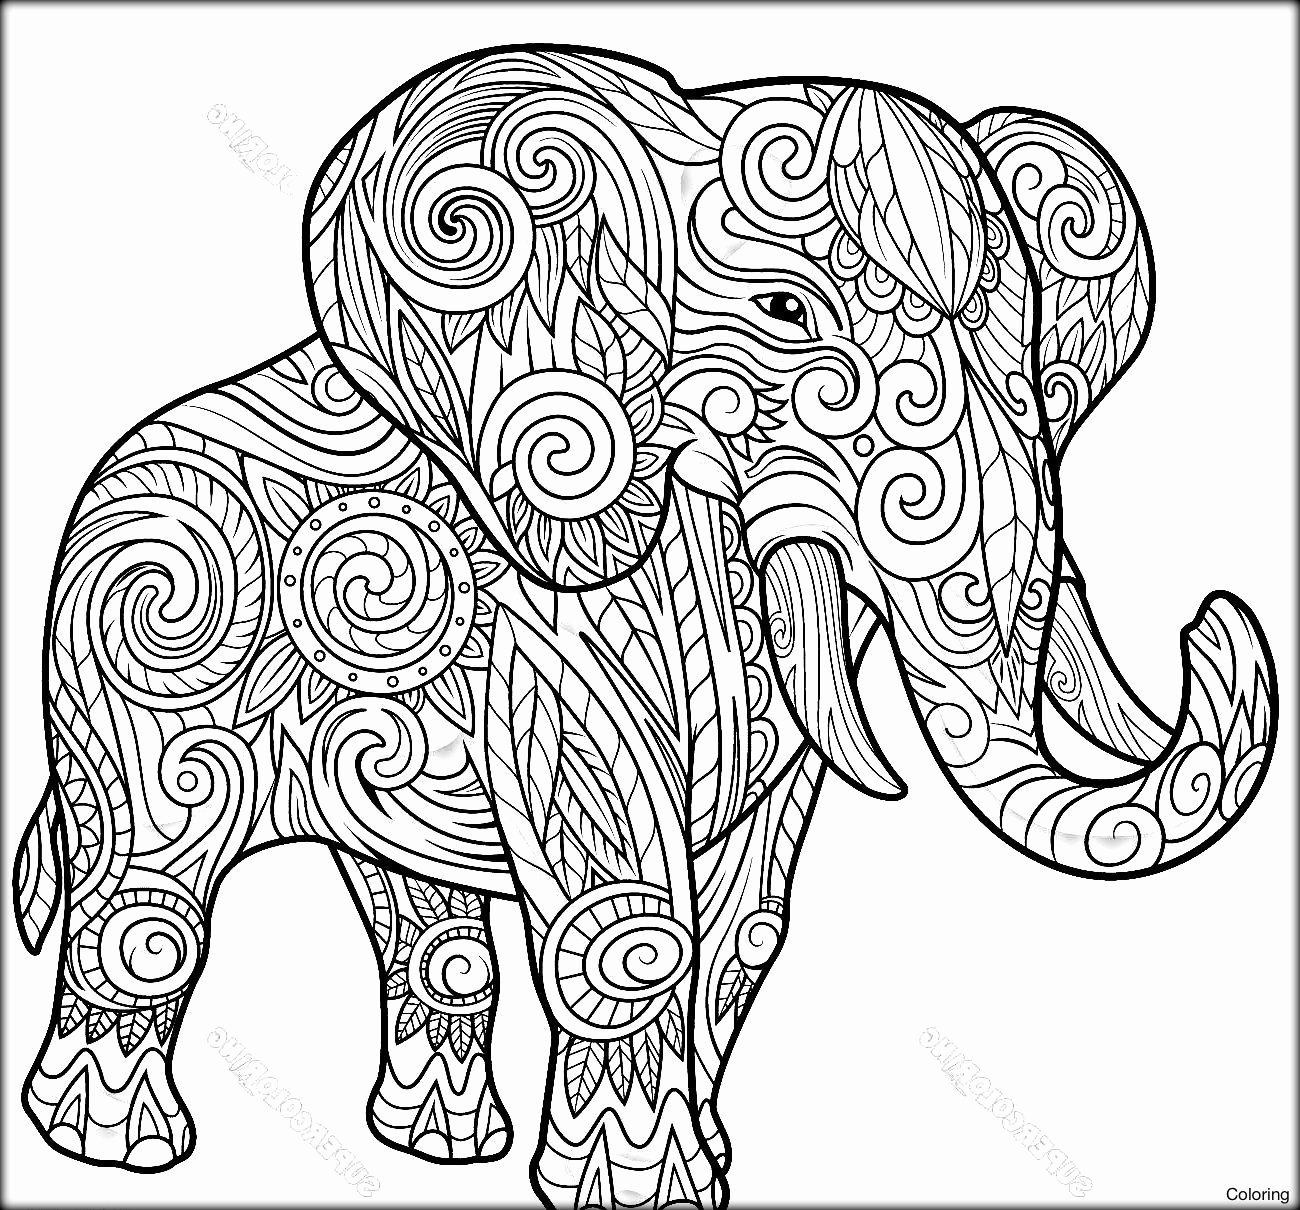 Elephant Mandala Coloring Pages Awesome Elephant Mandala Coloring Pages Collection